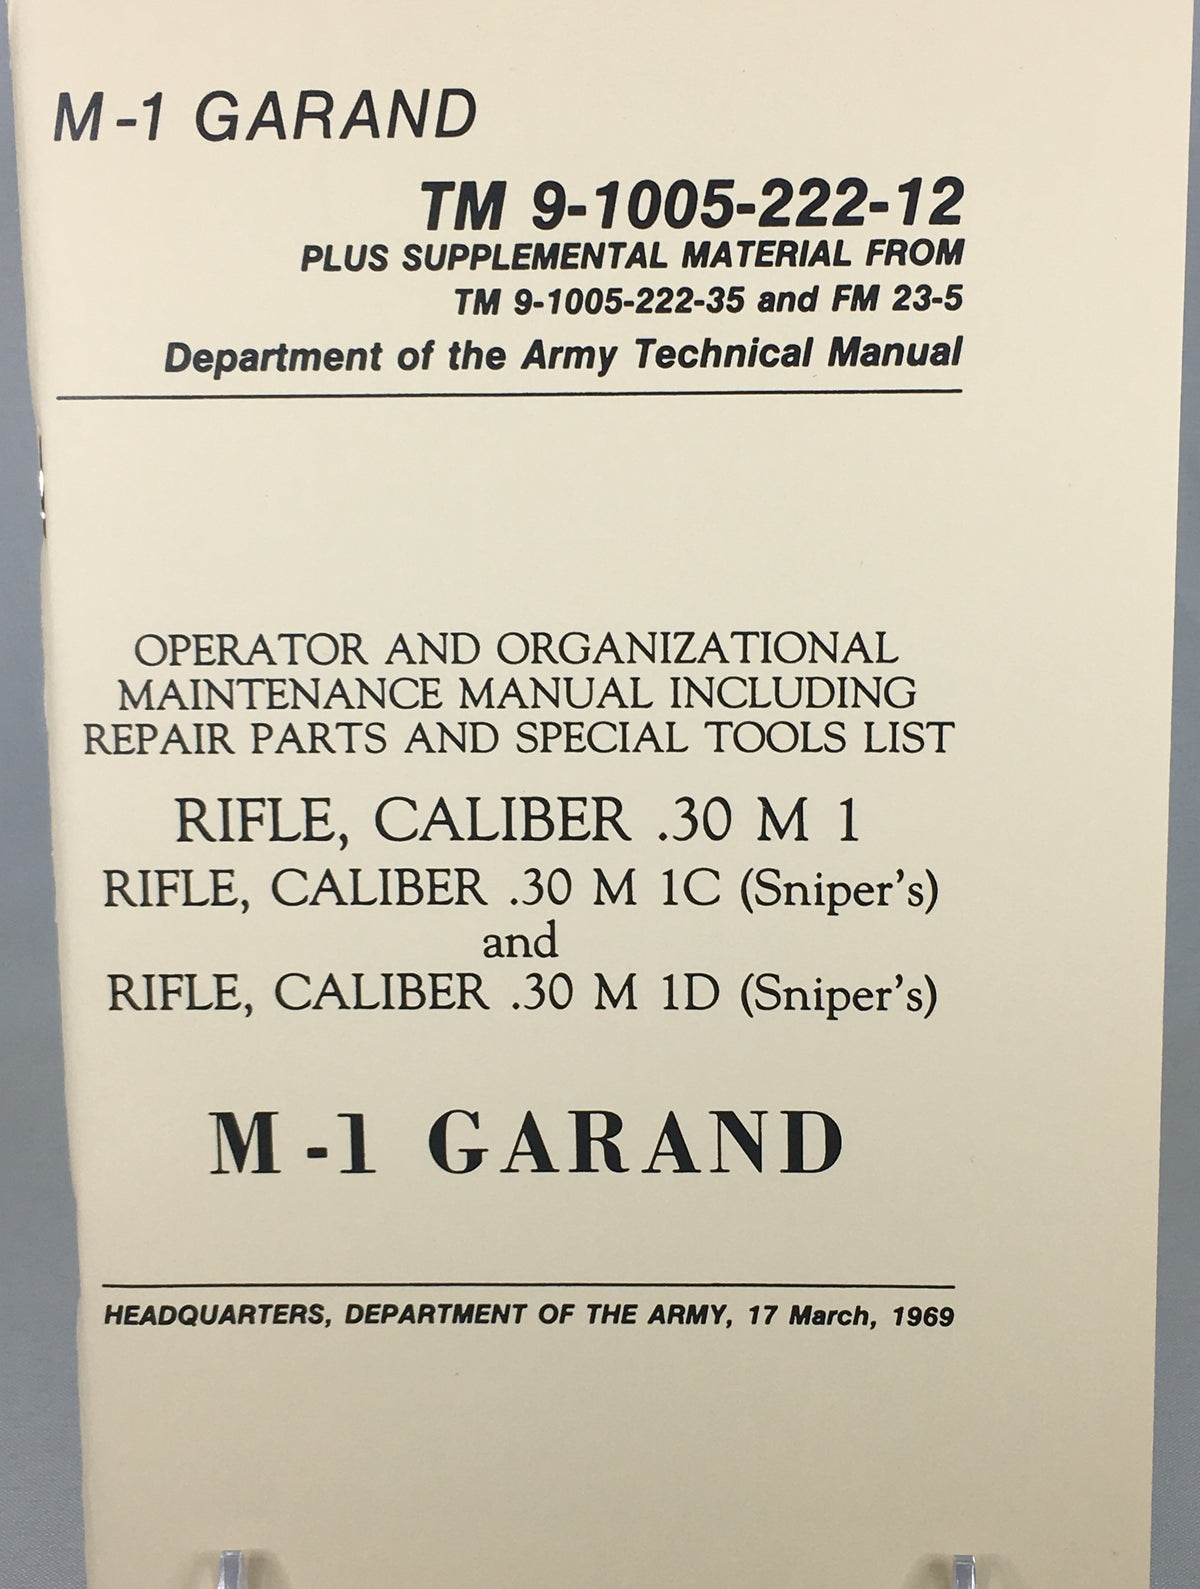 M-1 Garand Rifle - Department of the Army Technical Manual